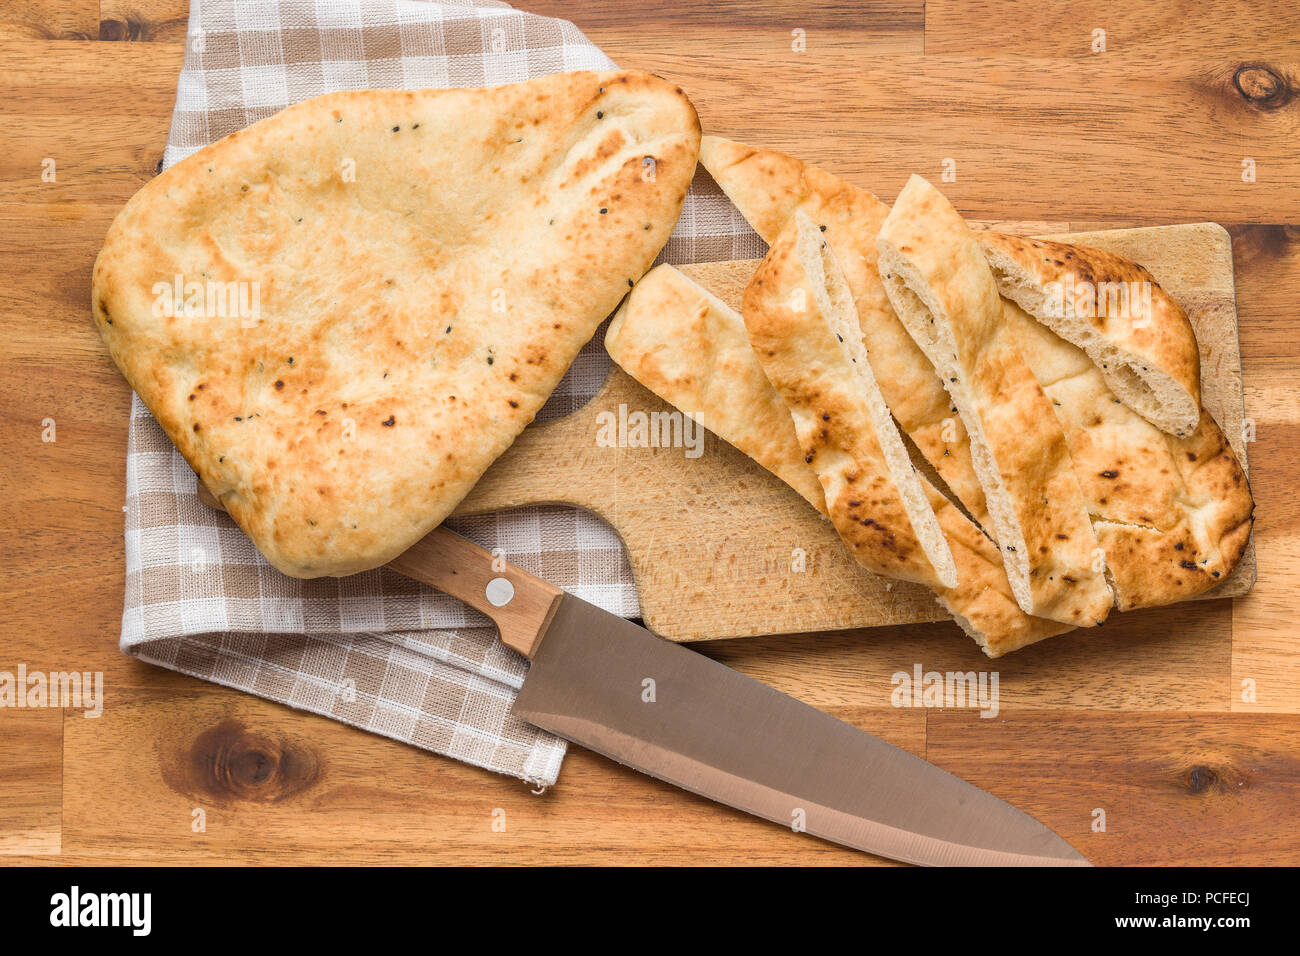 Pain naan indien sur la table en bois. Photo Stock